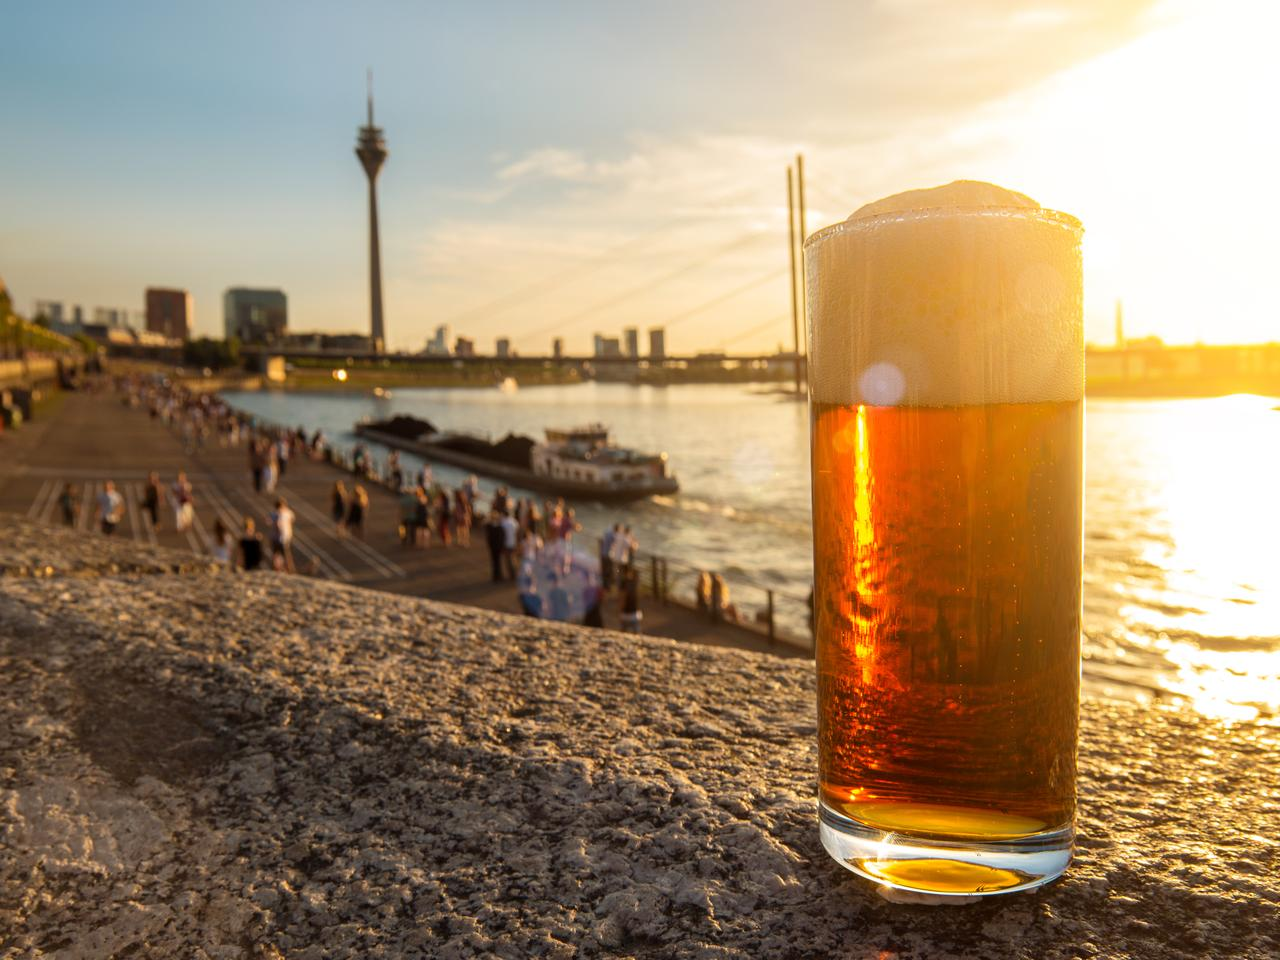 If there's a place you need to try beer, Dusseldorf is one of those places.